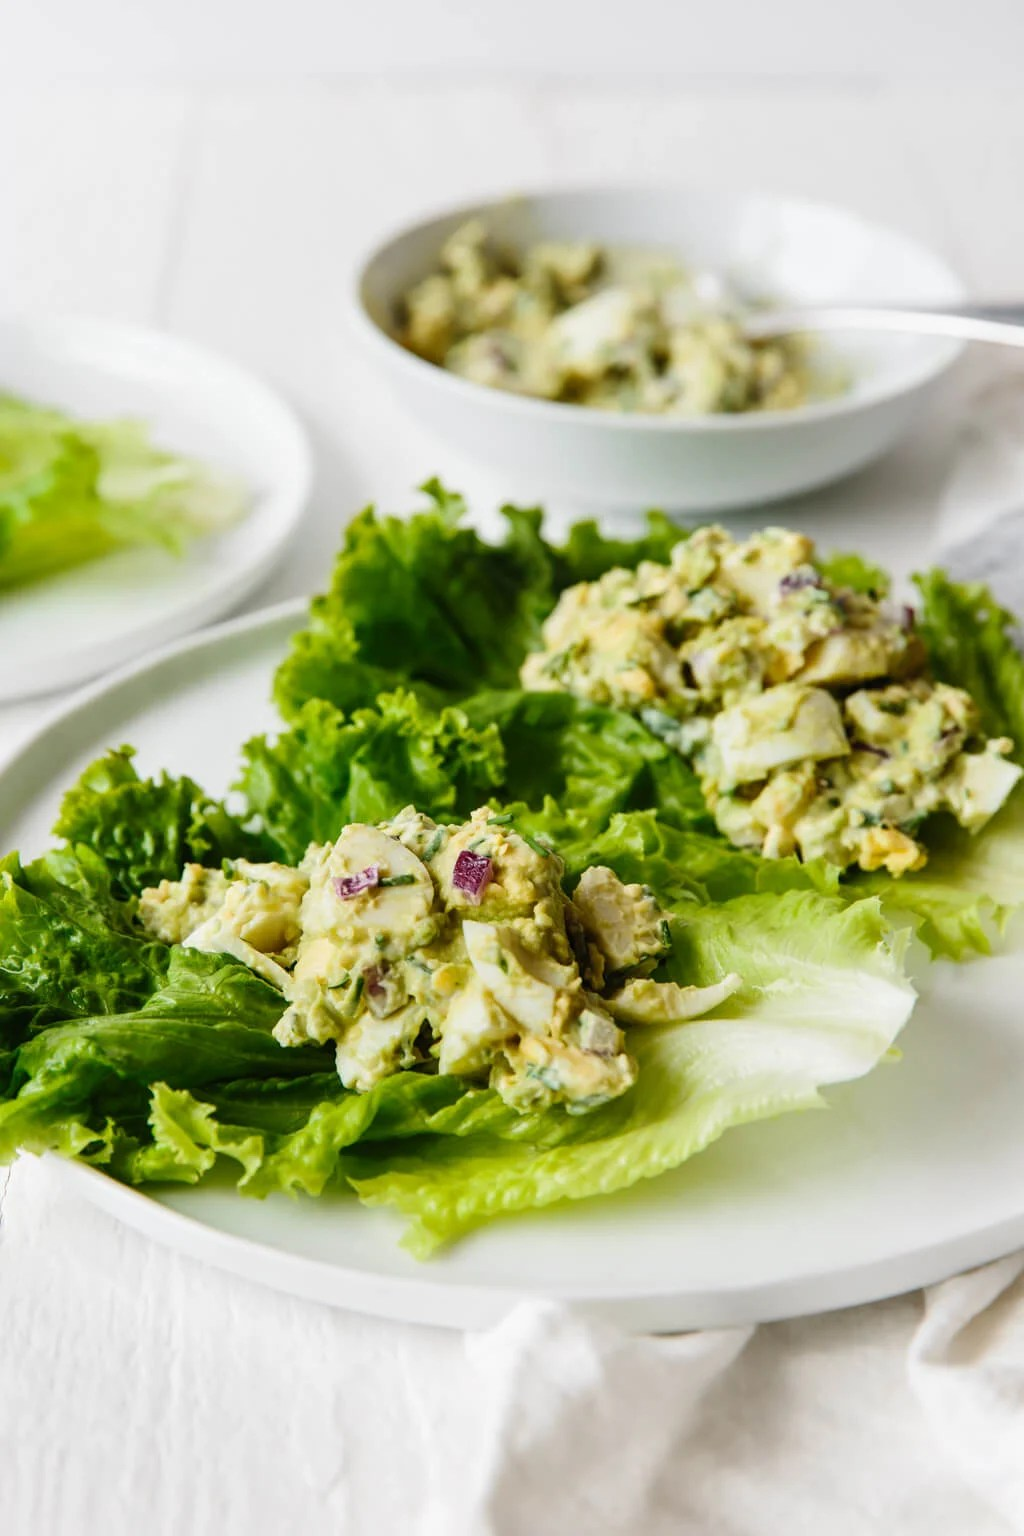 Avocado egg salad in lettuce leaves on a white plate.